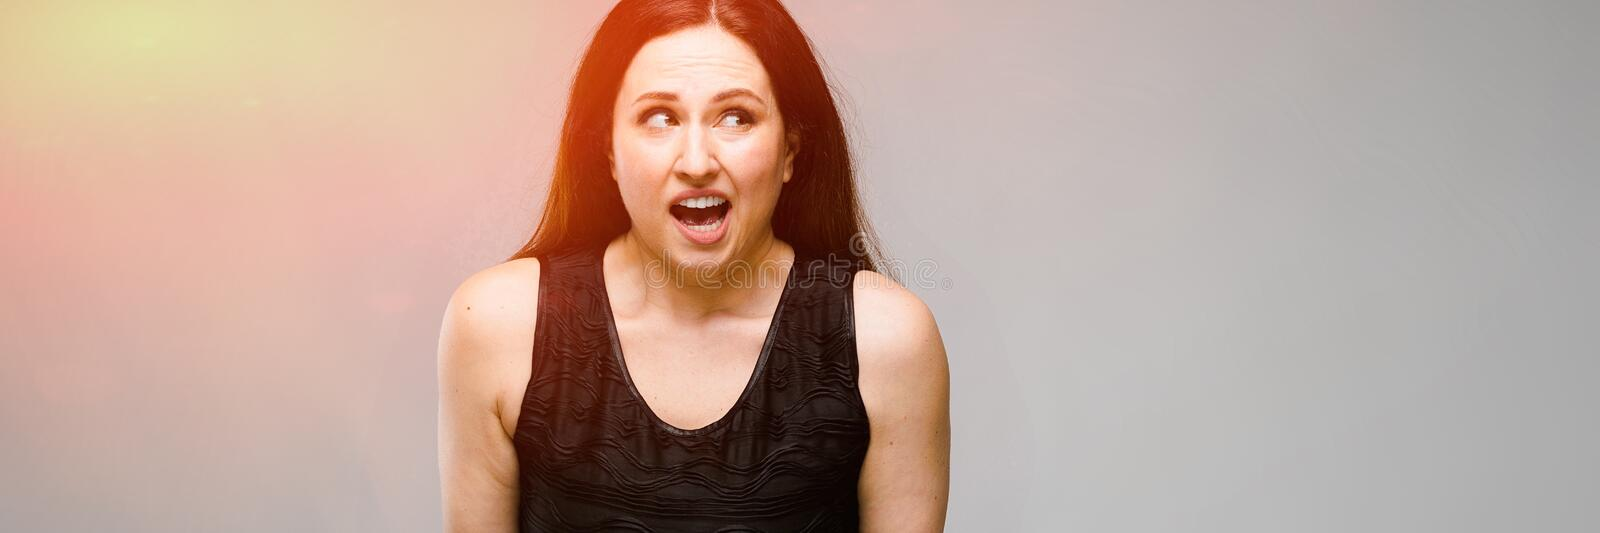 Portrait of emotional pretty confident puzzled astonished plus size model standing in studio on gray background royalty free stock photo